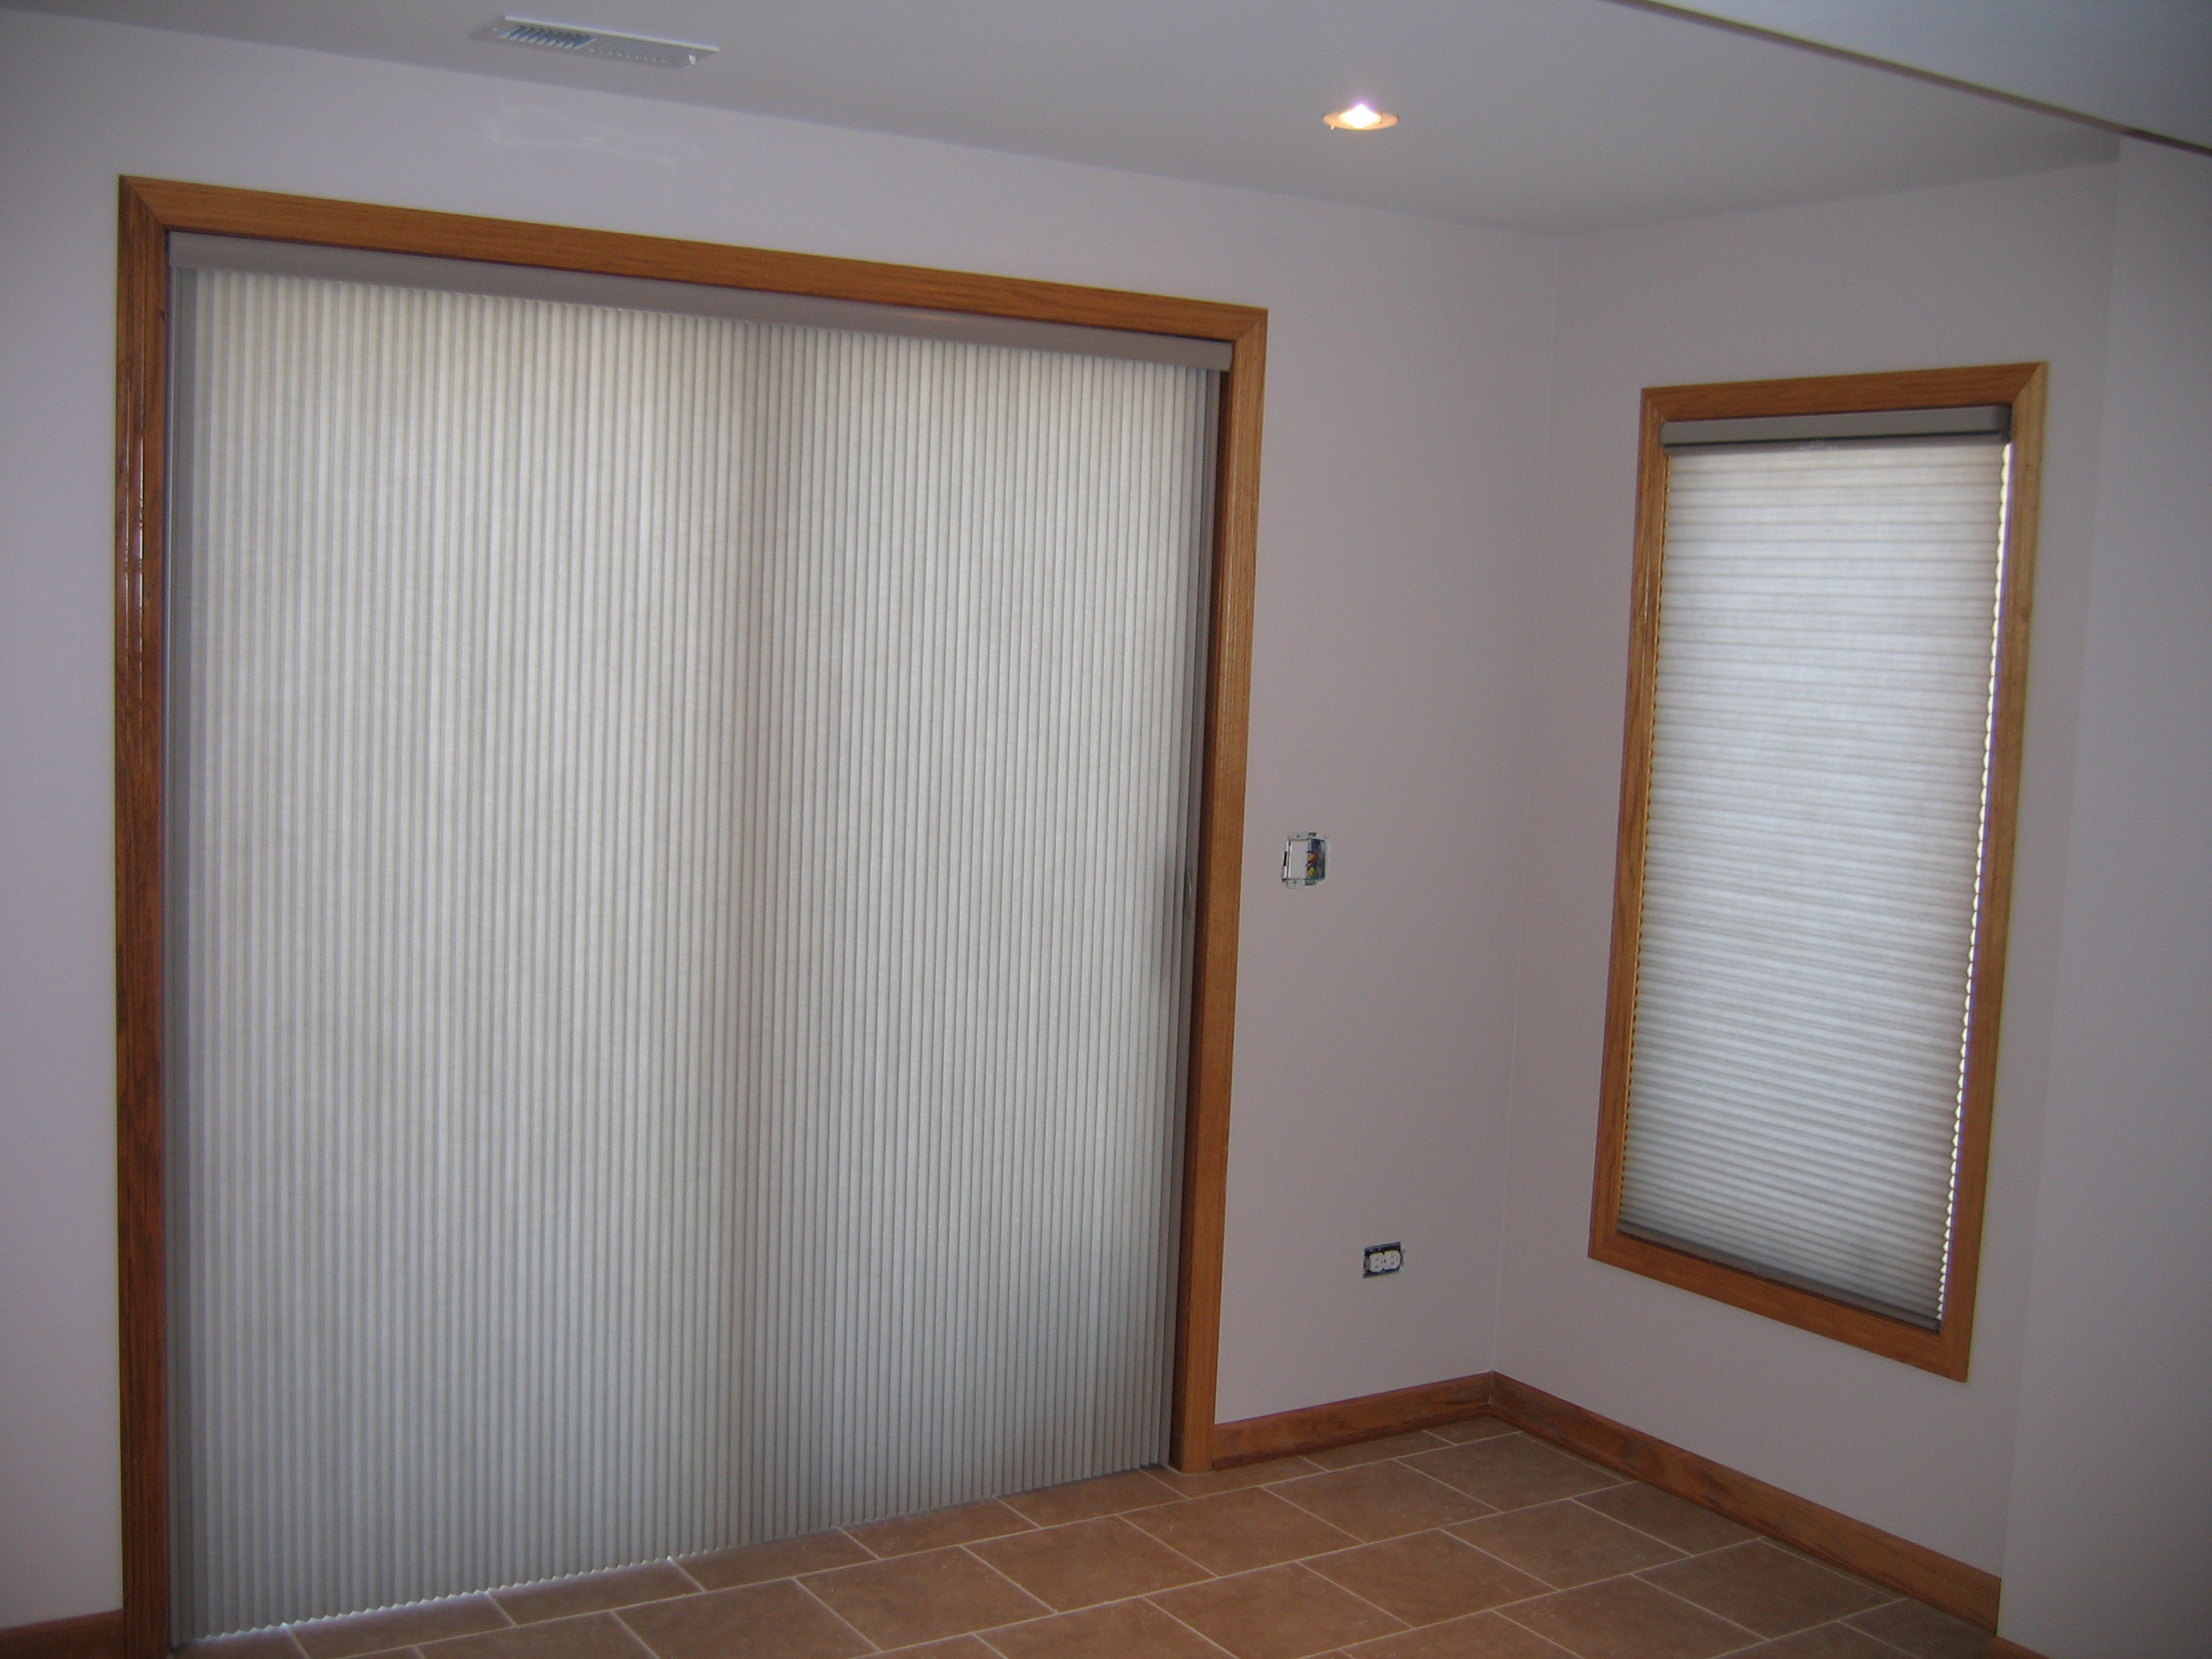 Patio door curtains and blinds - Window Treatments For Patio Doors Ideas Window Treatments For Sliding Glass Doors Ideas Tips Installing Sliding